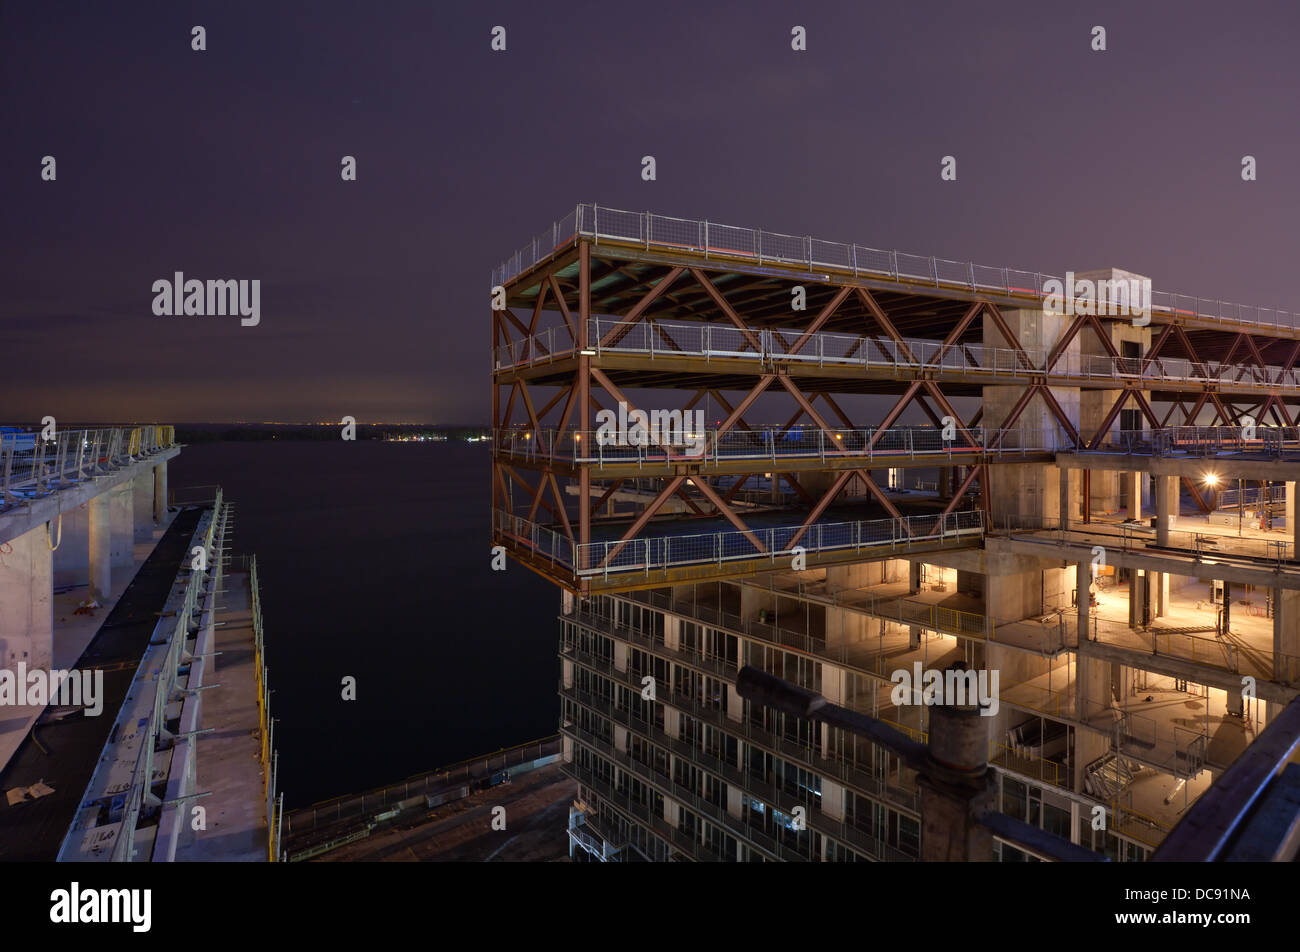 Condominium under construction, Toronto, Ontario, Canada. - Stock Image